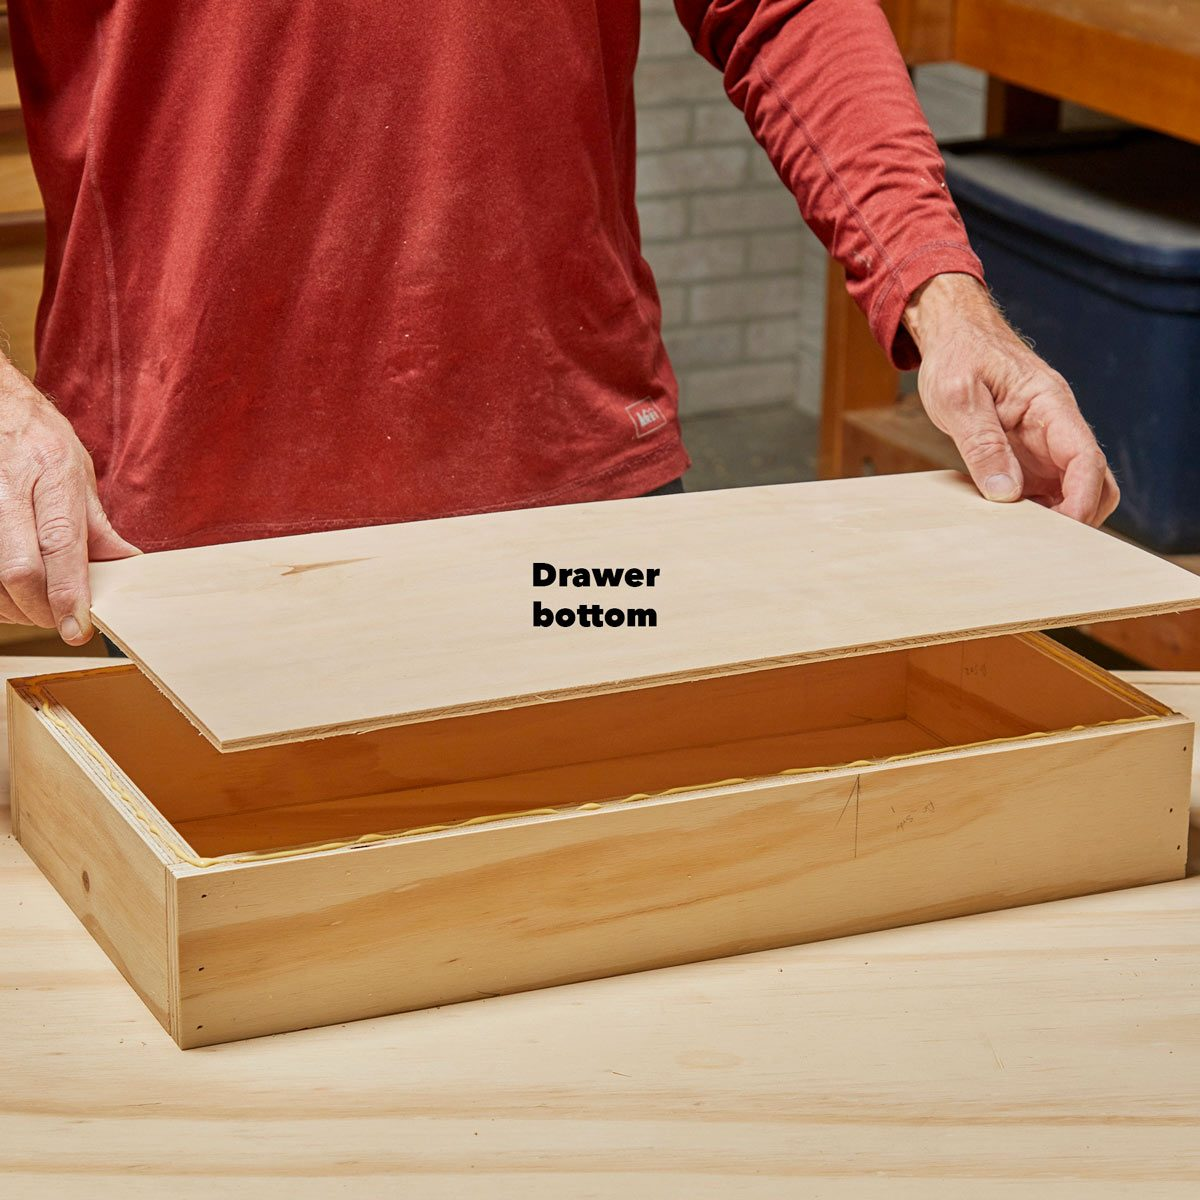 install drawer bottoms